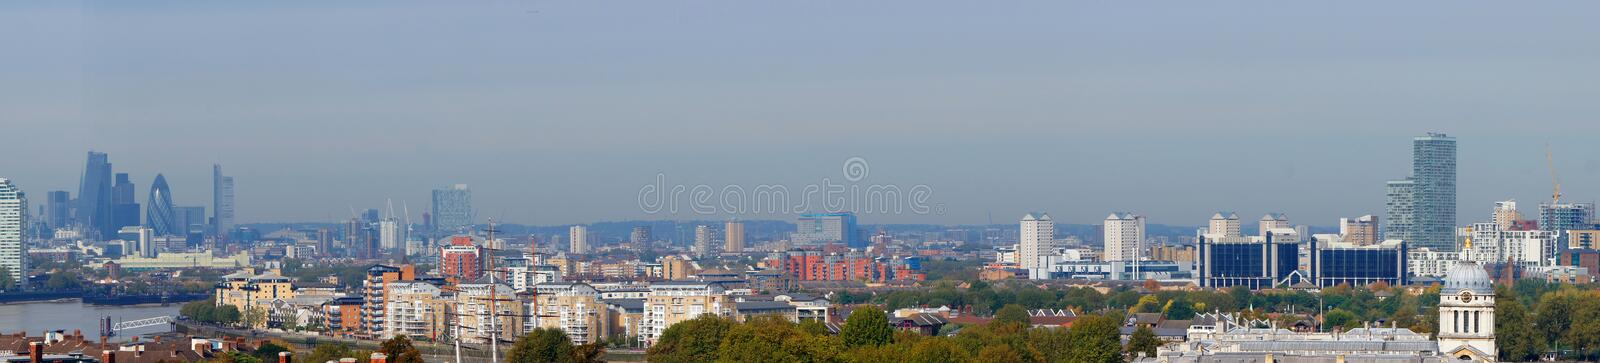 London-Stadtpanorama von Greenwich-Hügel lizenzfreies stockfoto